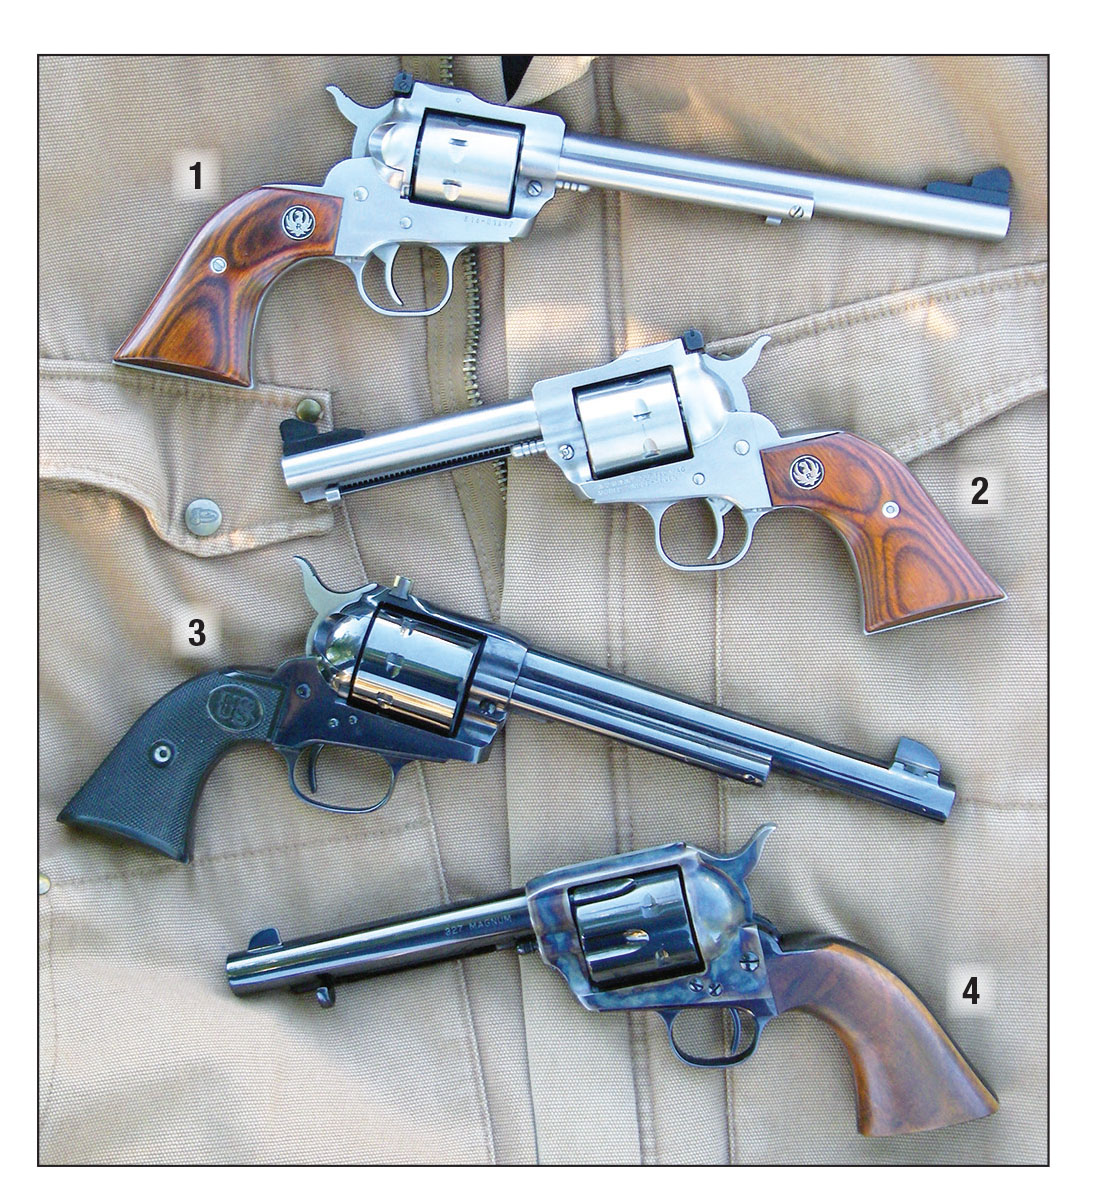 While the .327 Federal Magnum is available in several small revolvers intended for personal protection, Brian feels that it is at its best as a field cartridge in larger revolvers. Examples include the (1) Ruger Single-Seven (7½-inch barrel), (2) Ruger Single-Seven (45⁄8-inch barrel), (3) USFA eight-shot Sparrow Hawk (7½-inch barrel) and a (4) USFA Pre War (5½-inch barrel).